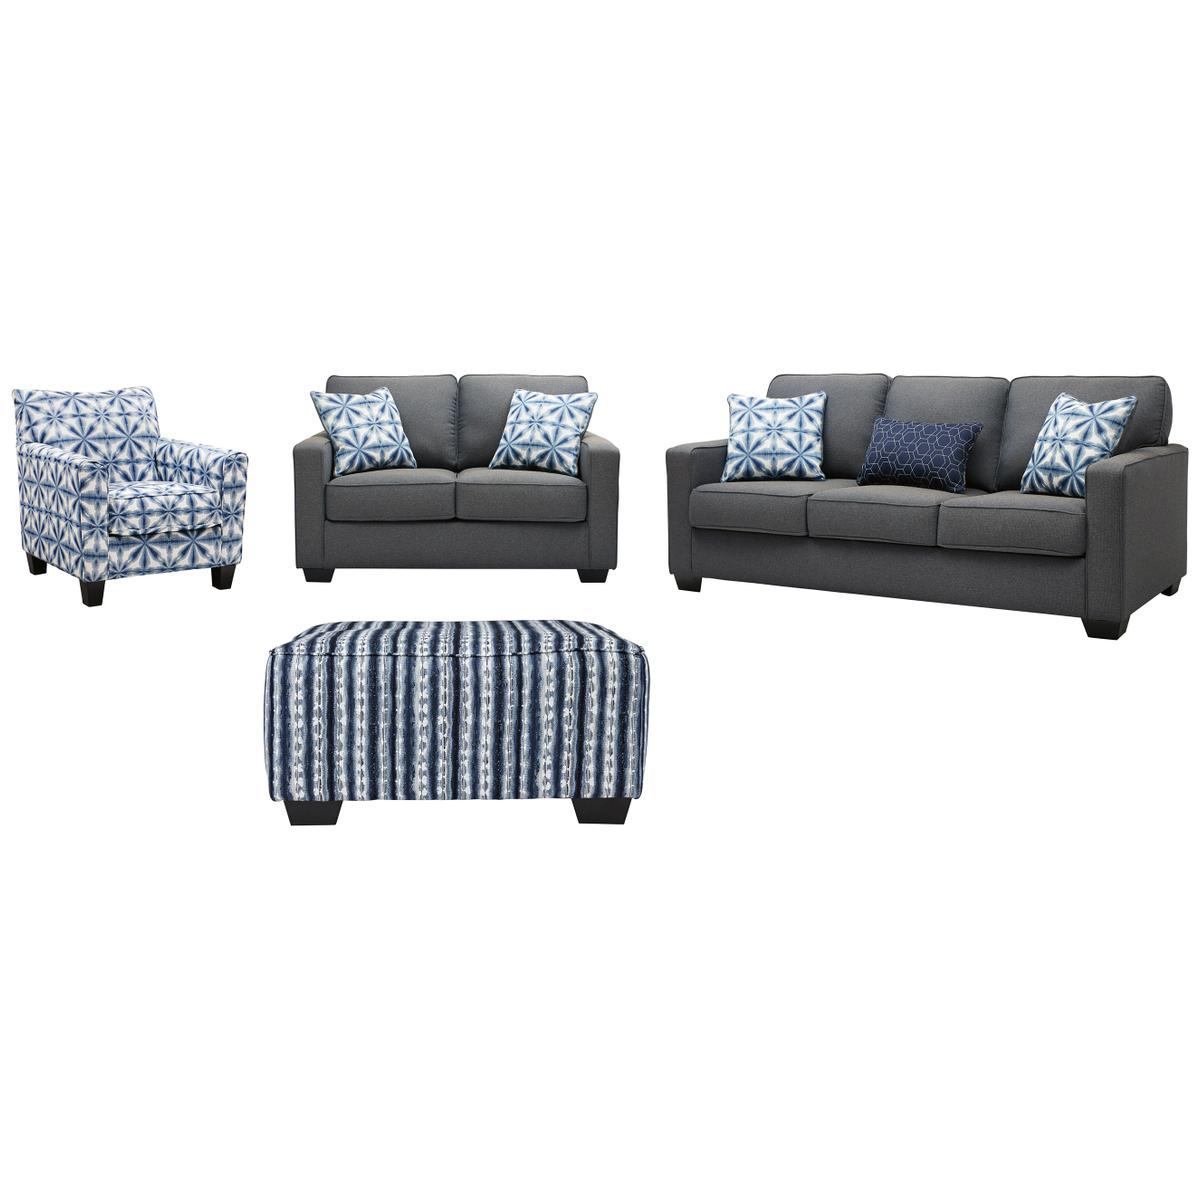 See Details - Sofa, Loveseat, Chair and Ottoman